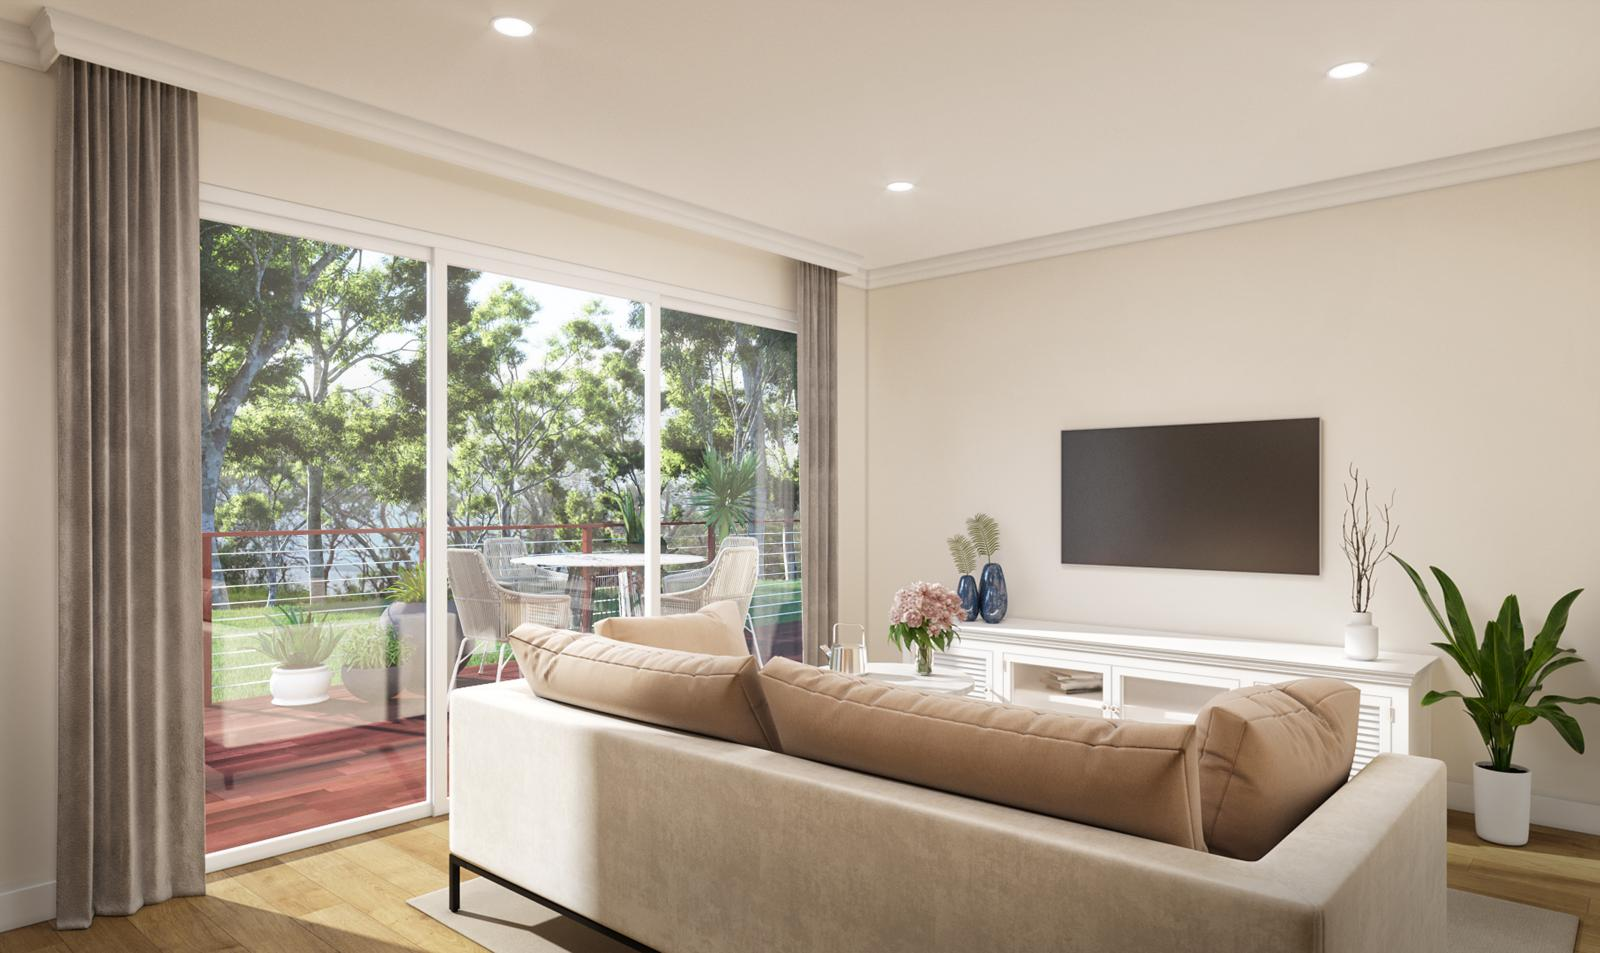 An interior artist's impression of one of the lakeside homes at Sunnylake Shores